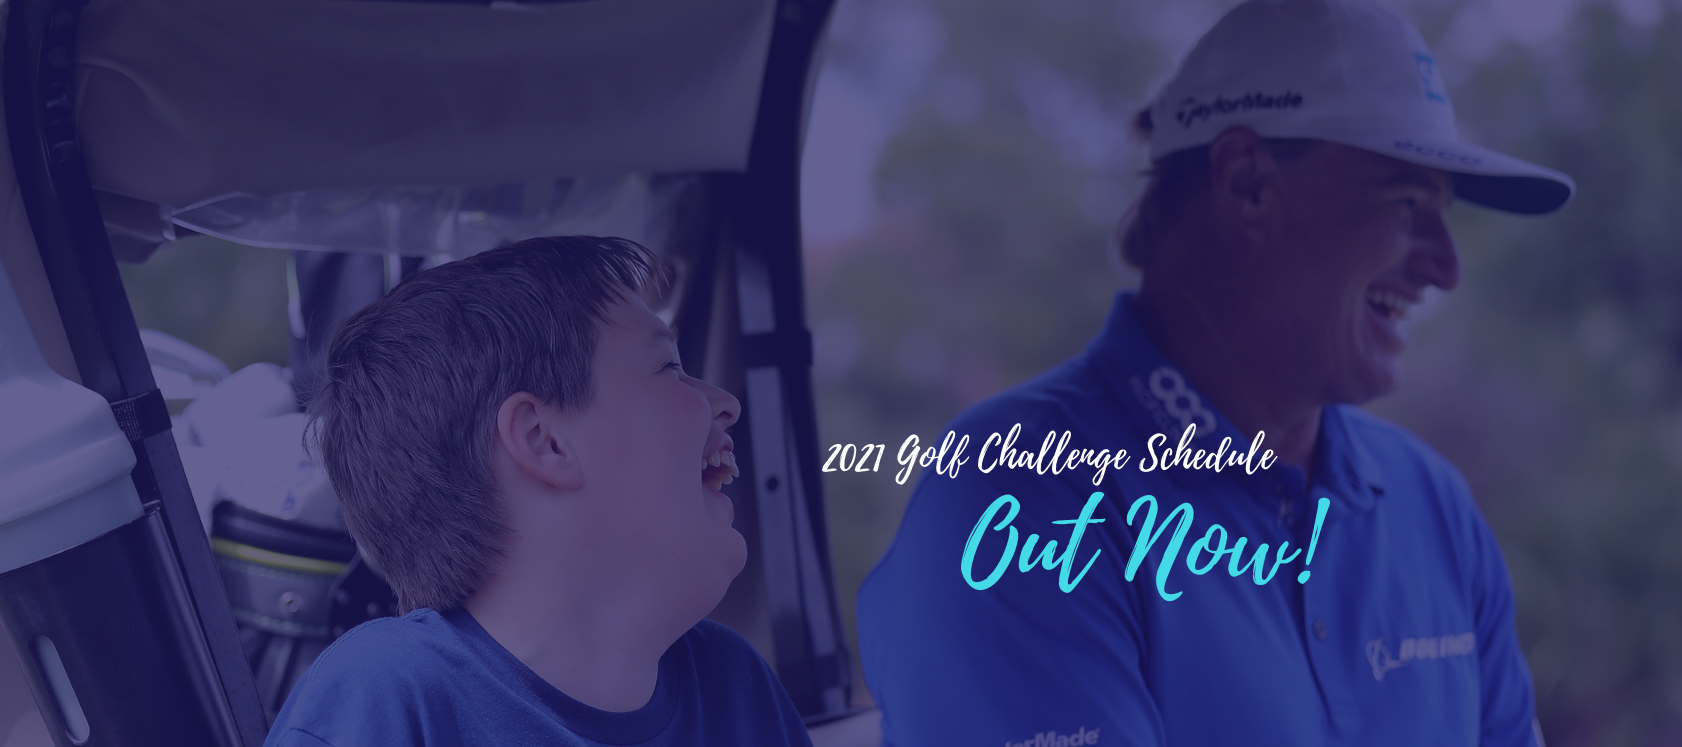 2021 Golf Challenge Now Open,